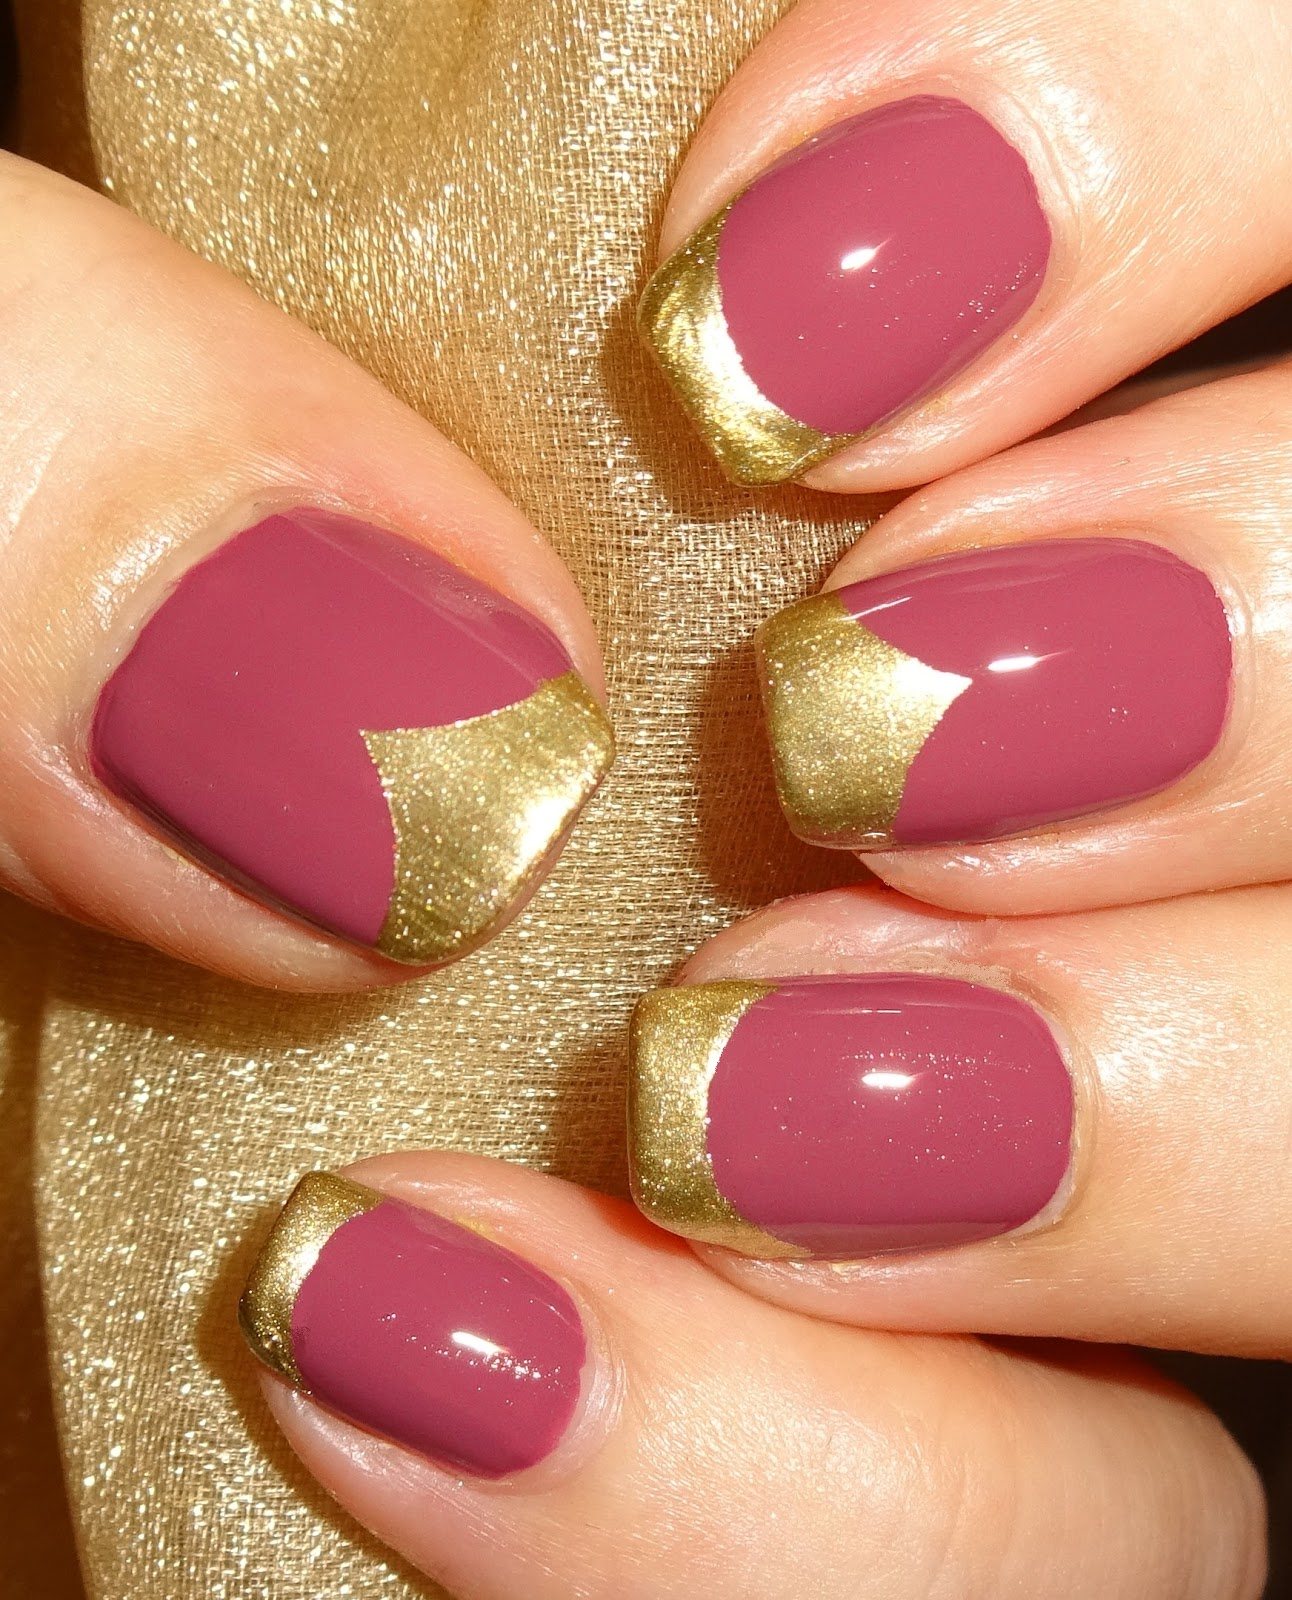 Half Well Nail Tips: Wendy's Delights: Half Moon Vinyl Nail Stencils From